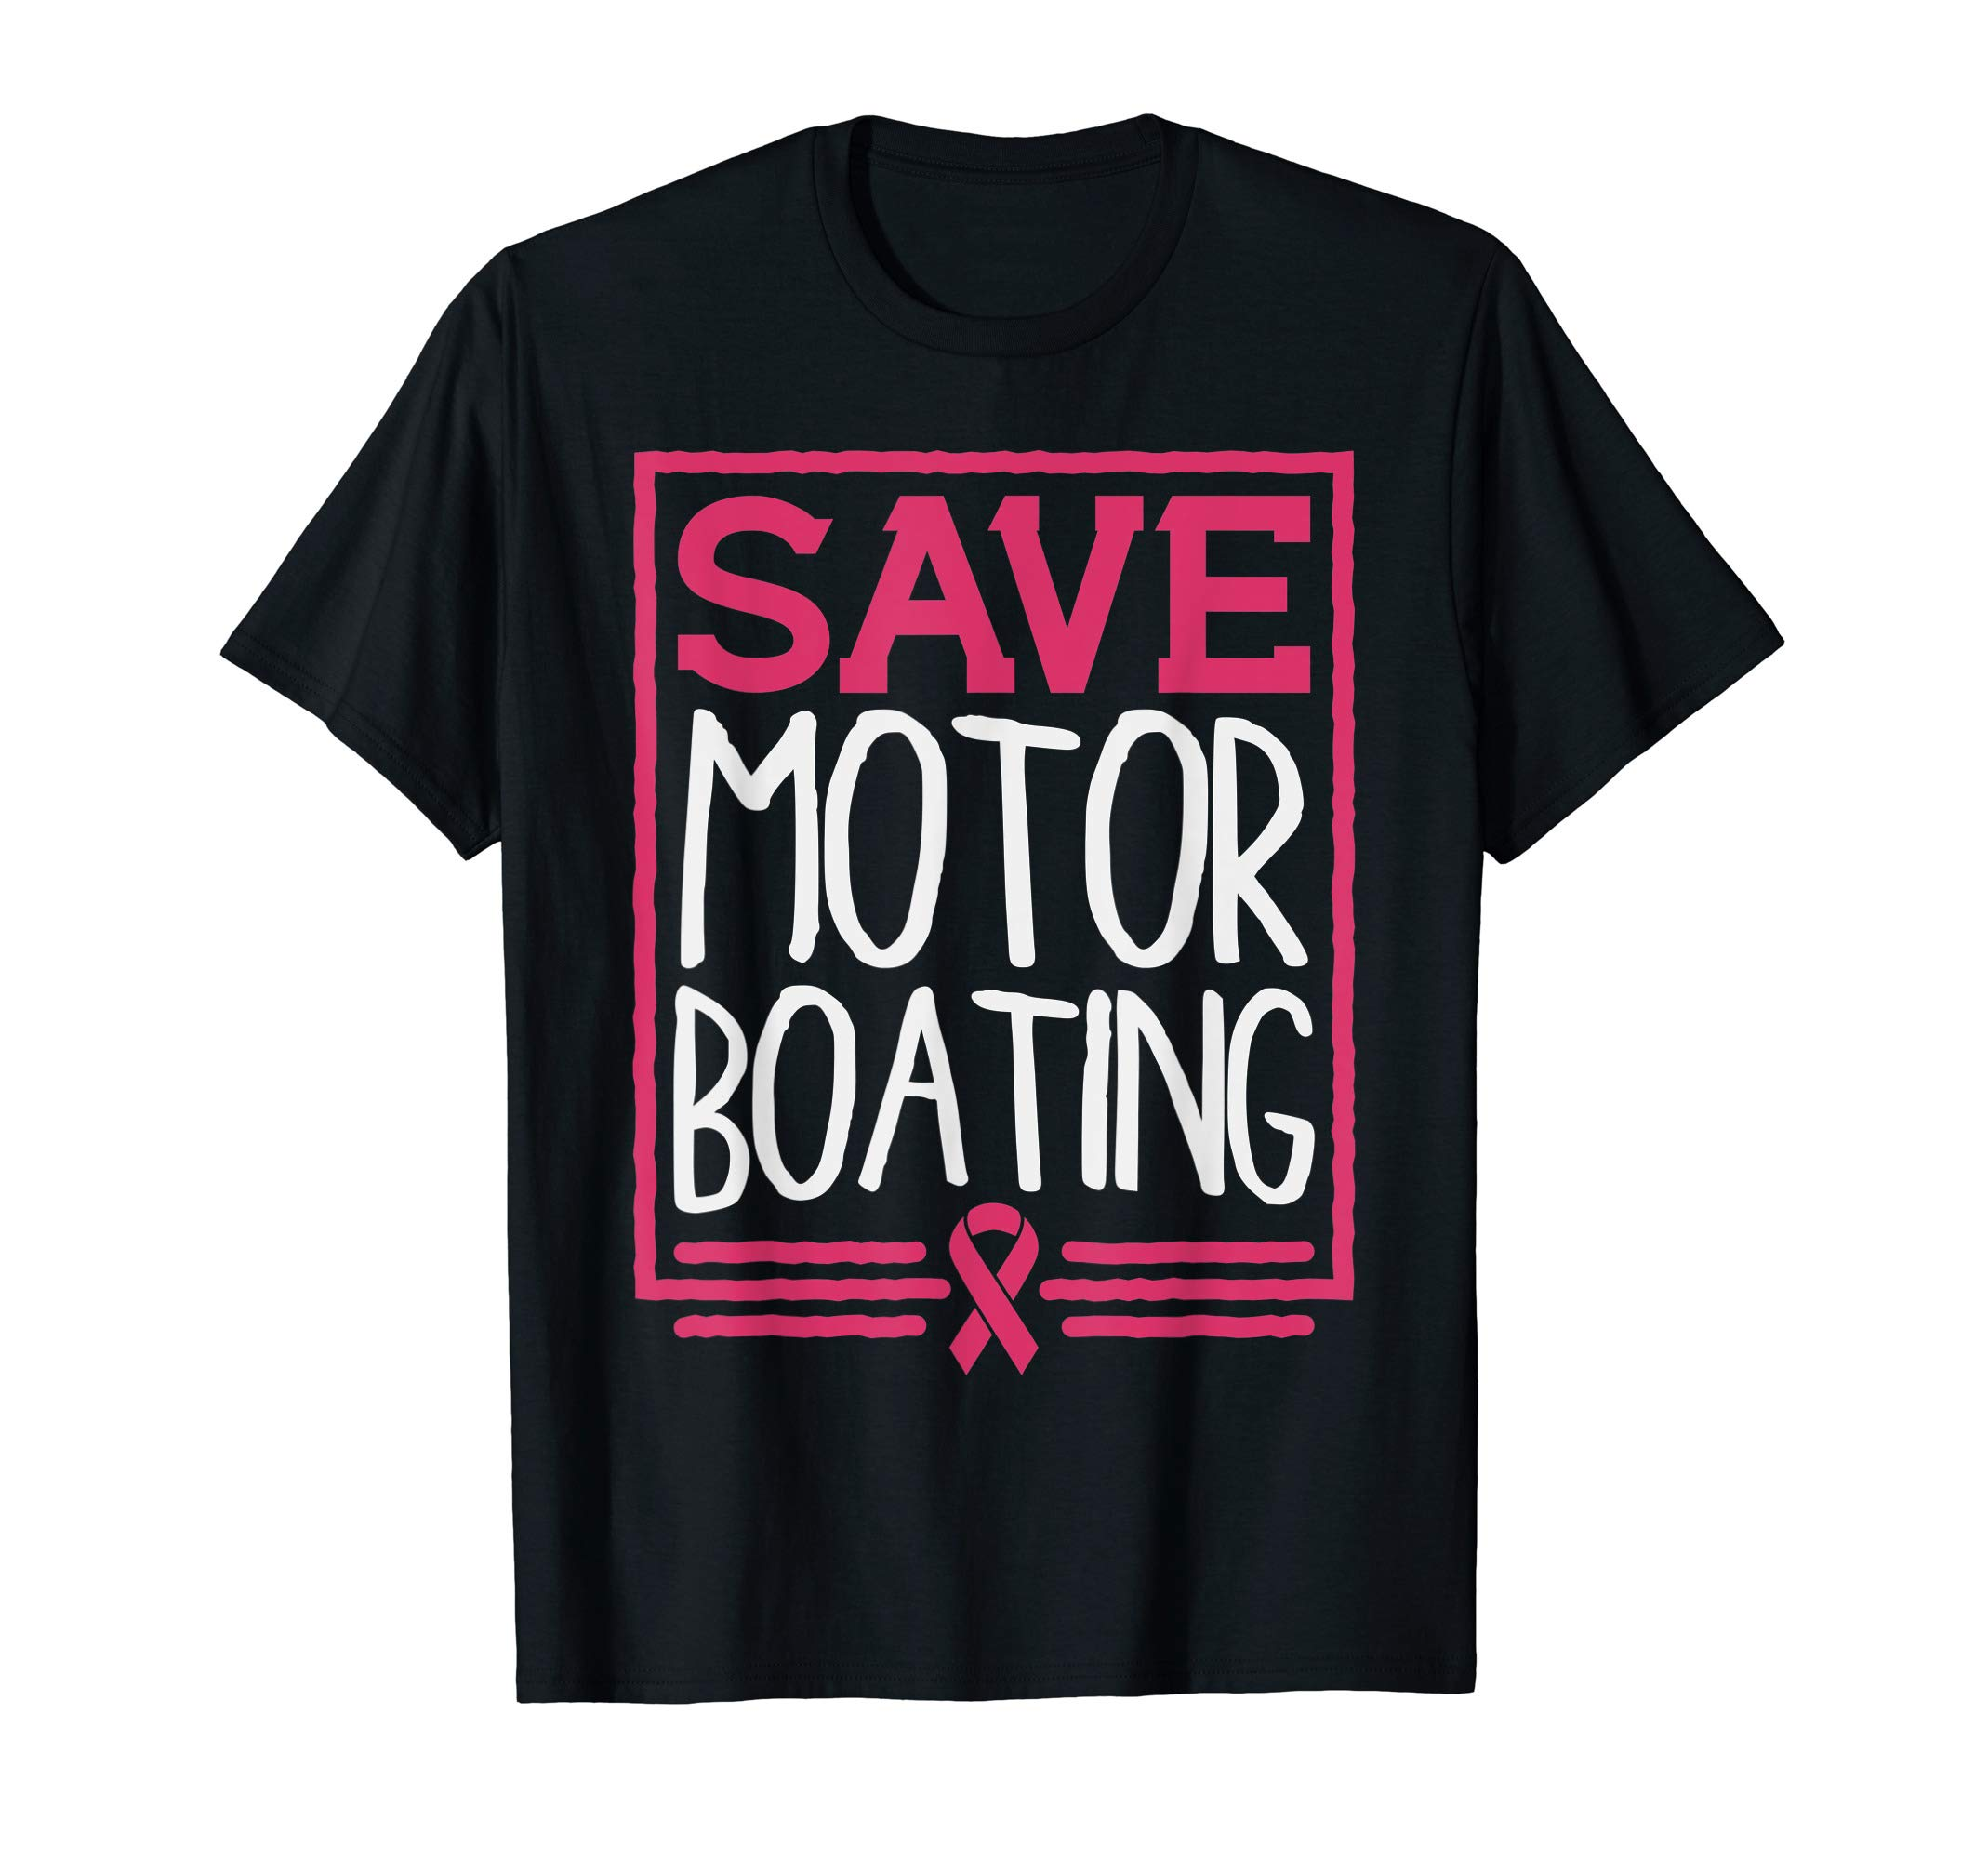 Save Motor Boating Funny Breast Cancer Pink Ribbon Men Gift T-Shirt by BoredKoalas Breast Cancer Shirts For Men Gifts